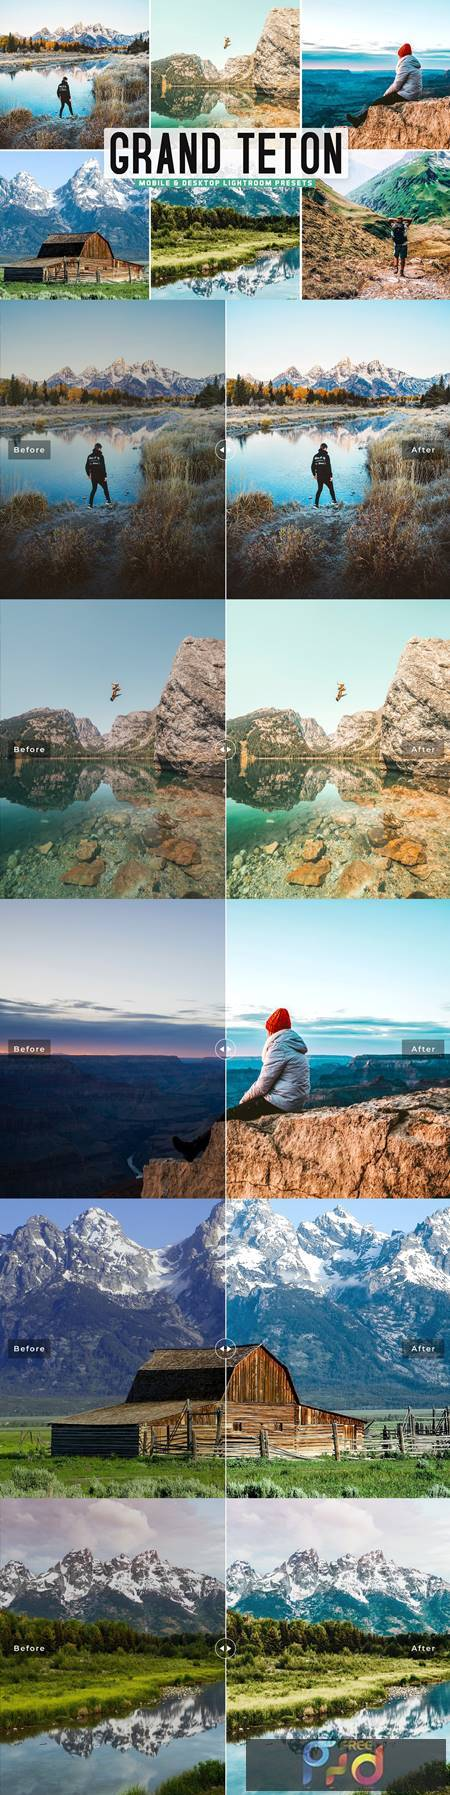 Grand Teton Pro Lightroom Presets 5478507 1